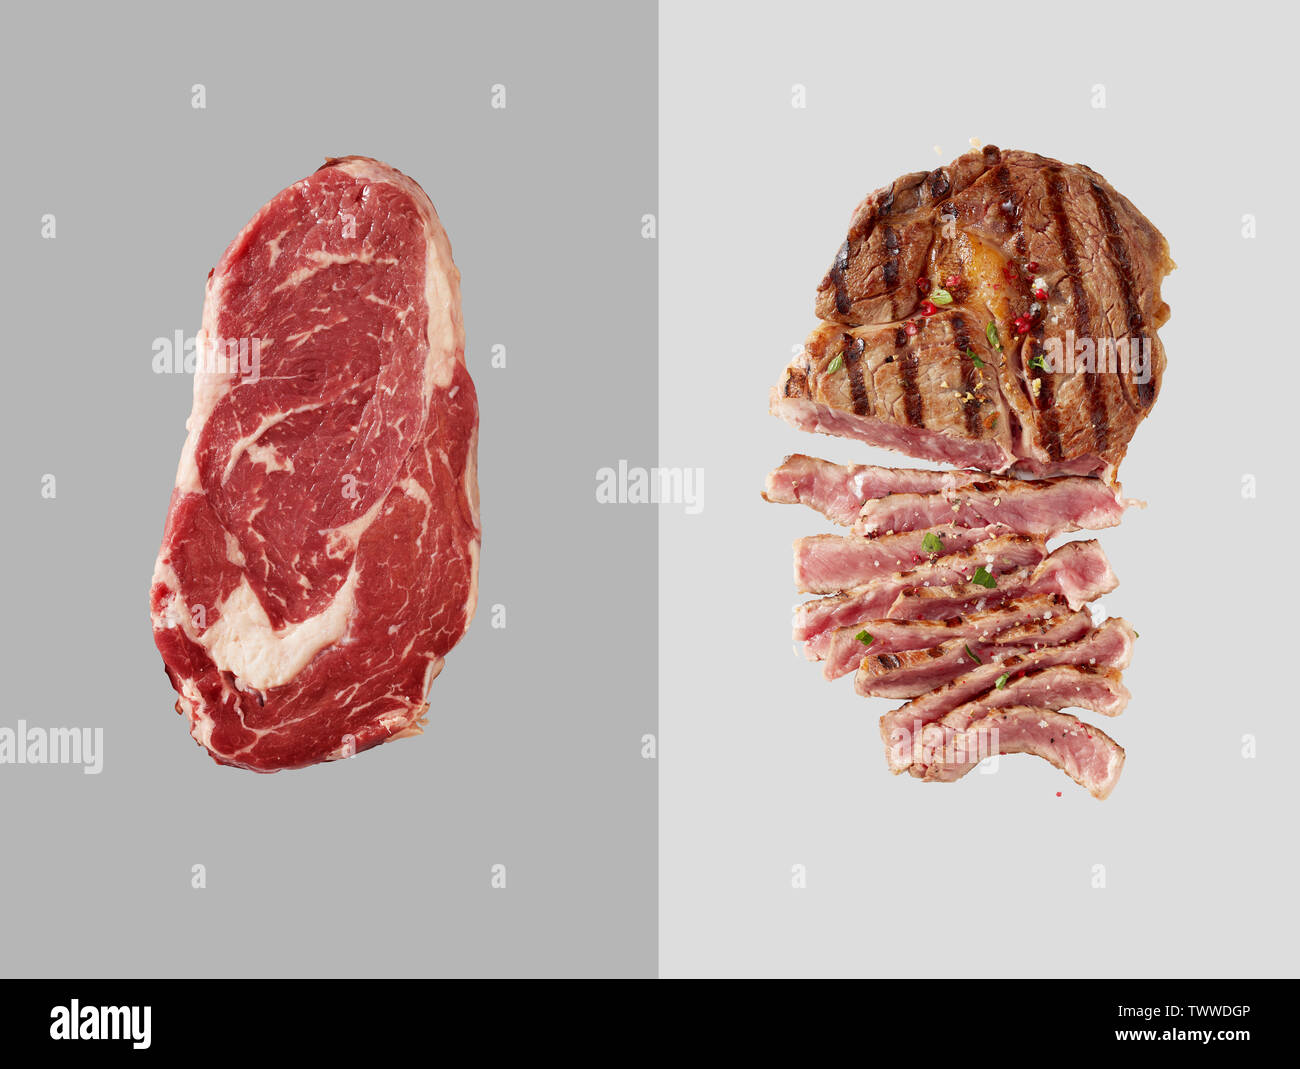 Chunk of uncooked beef over grey backdrop next to cooked beef with several slices cut out over light grey backdrop - Stock Image